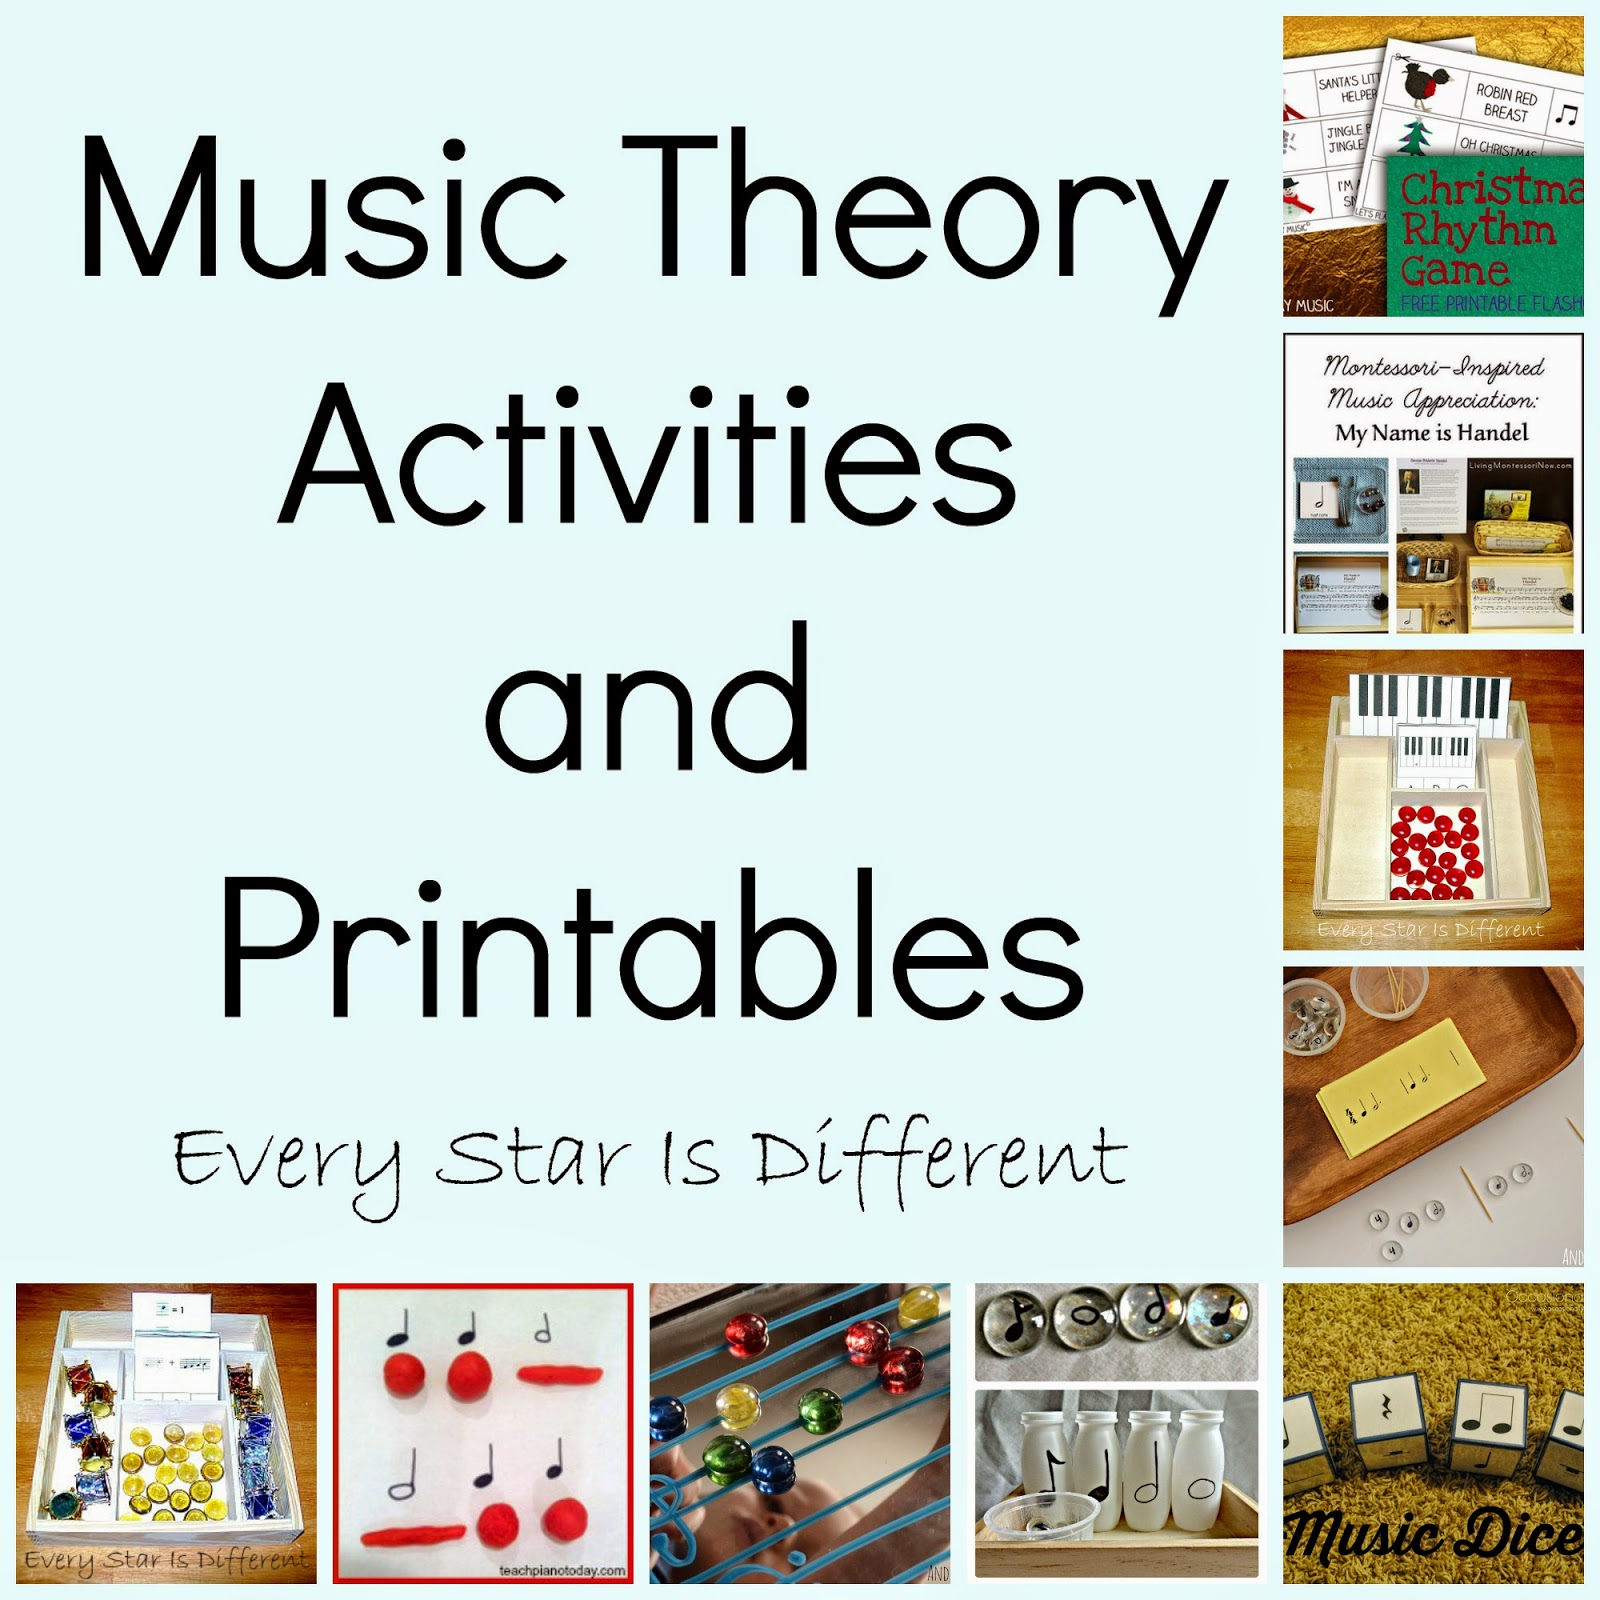 Music Theory Activities and Printables